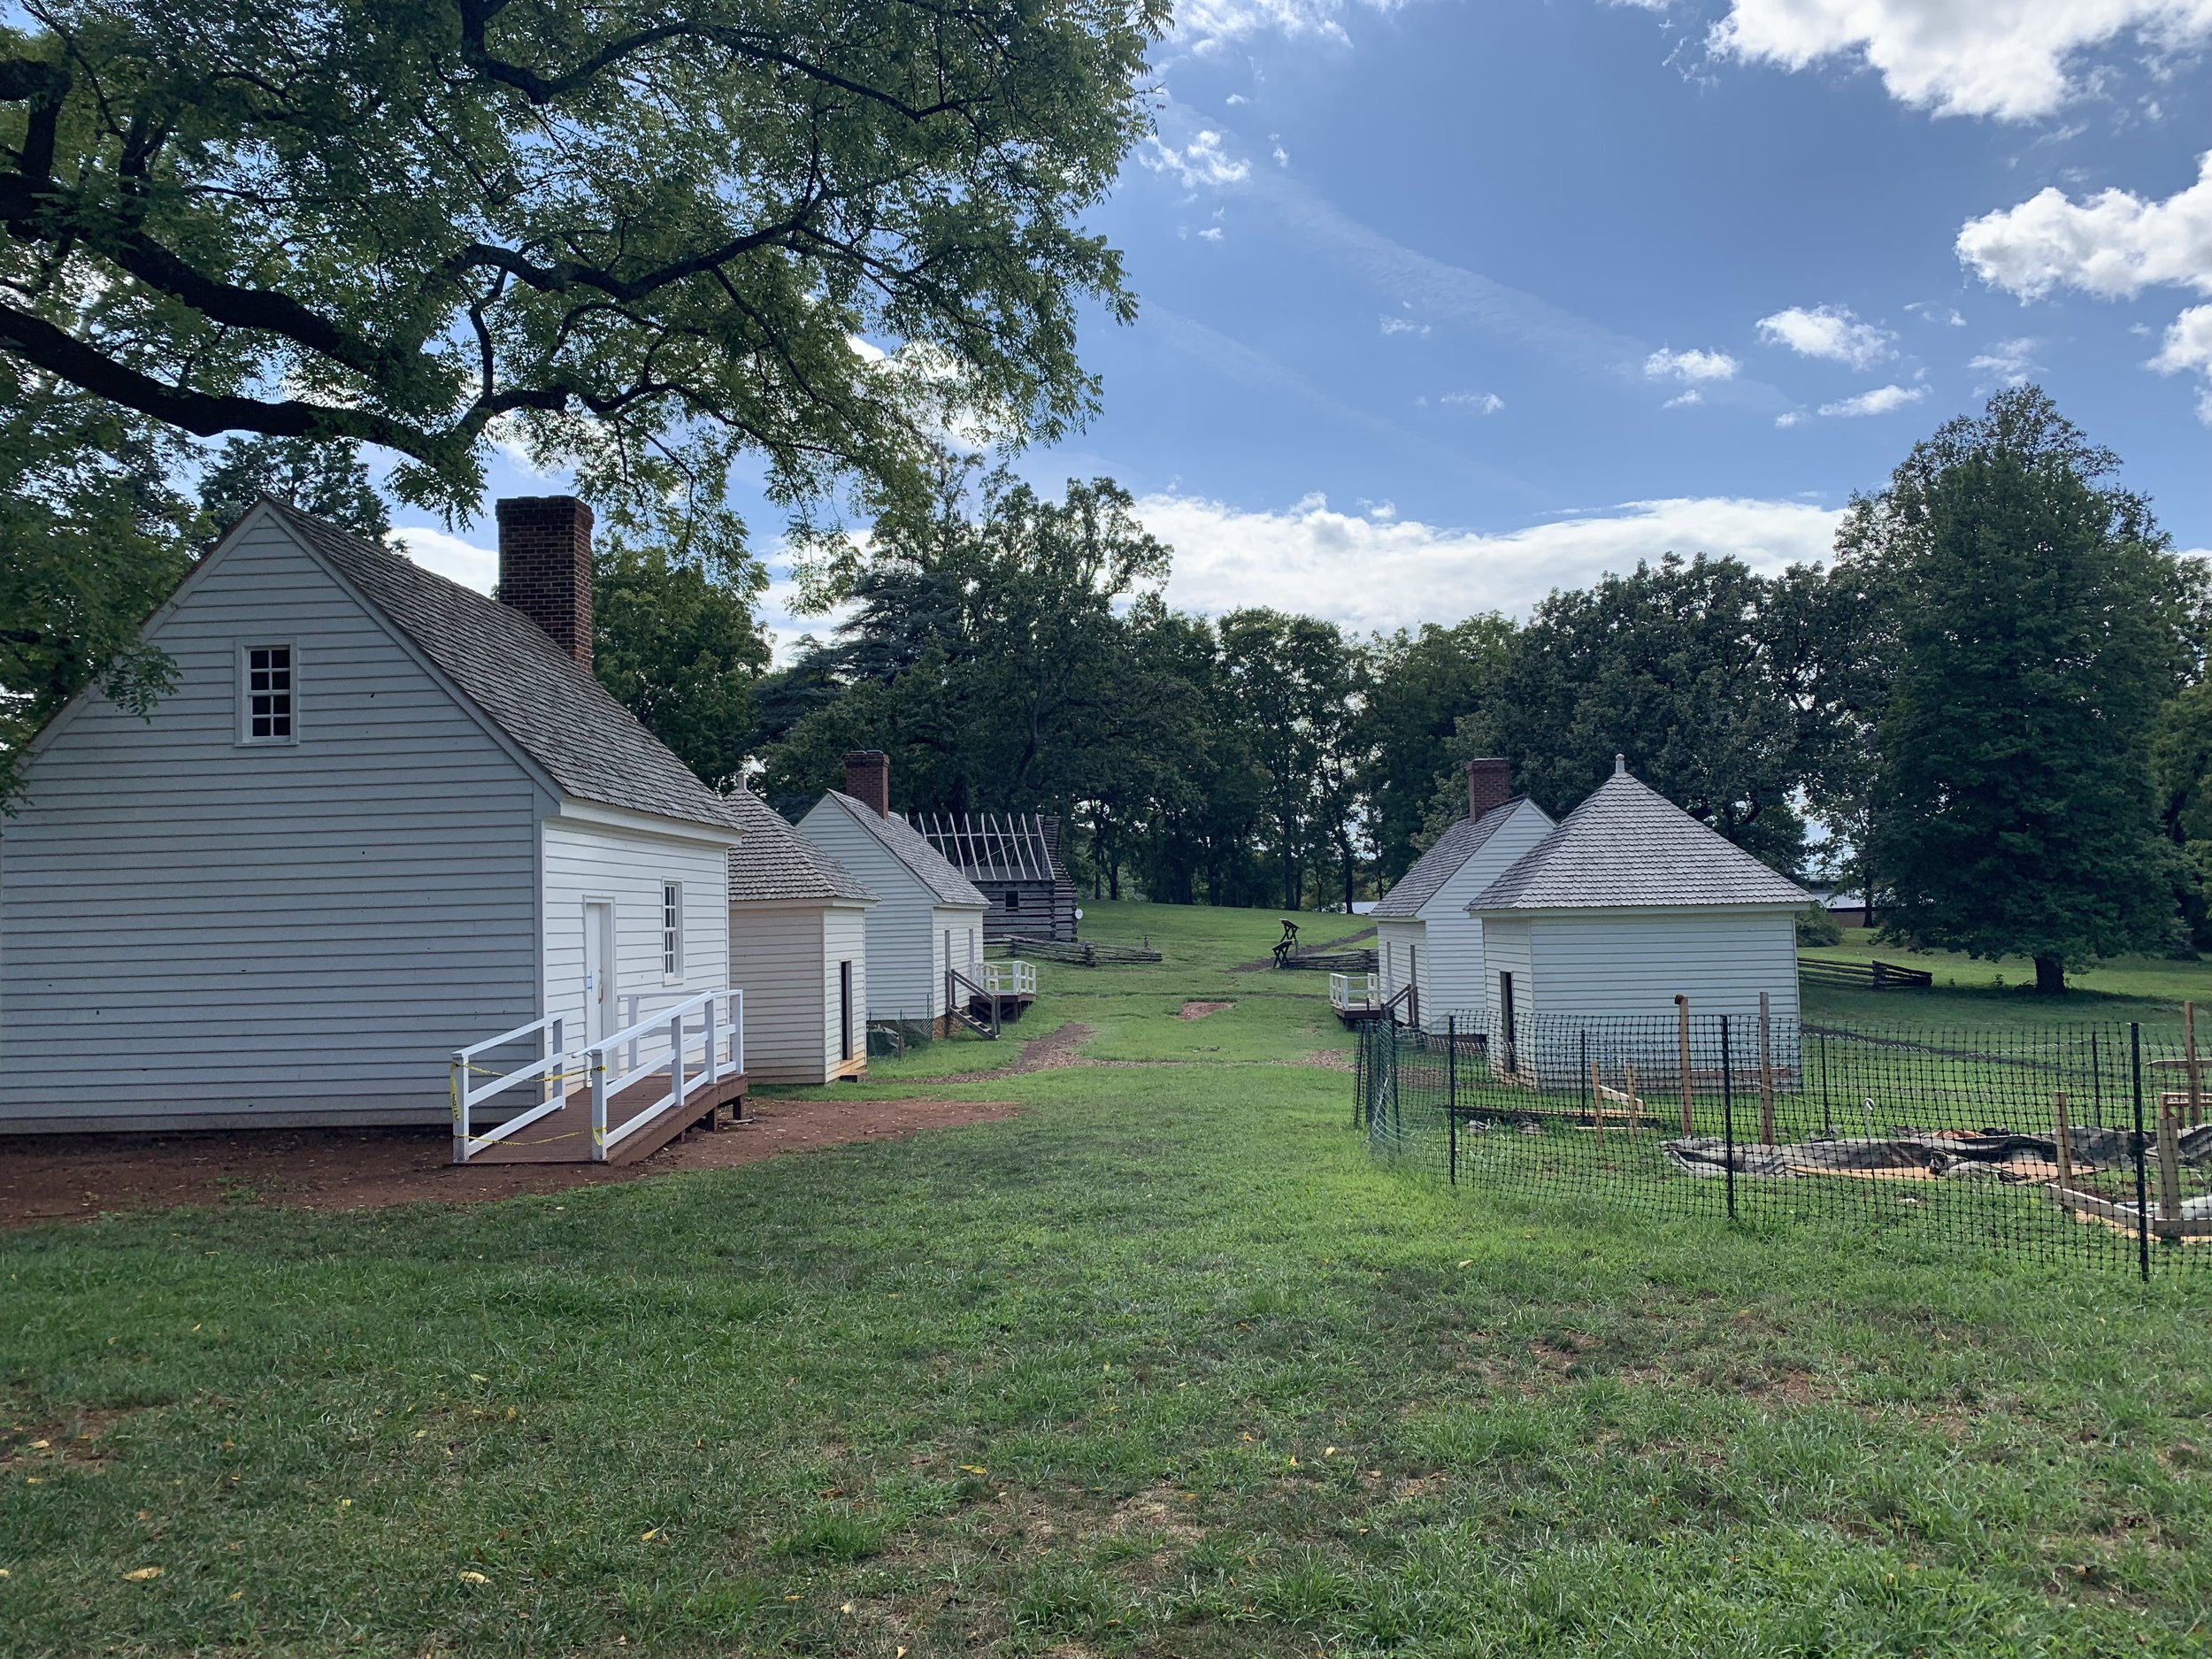 South Yard, Montpelier. Photo by Renée Ater, August 2019.